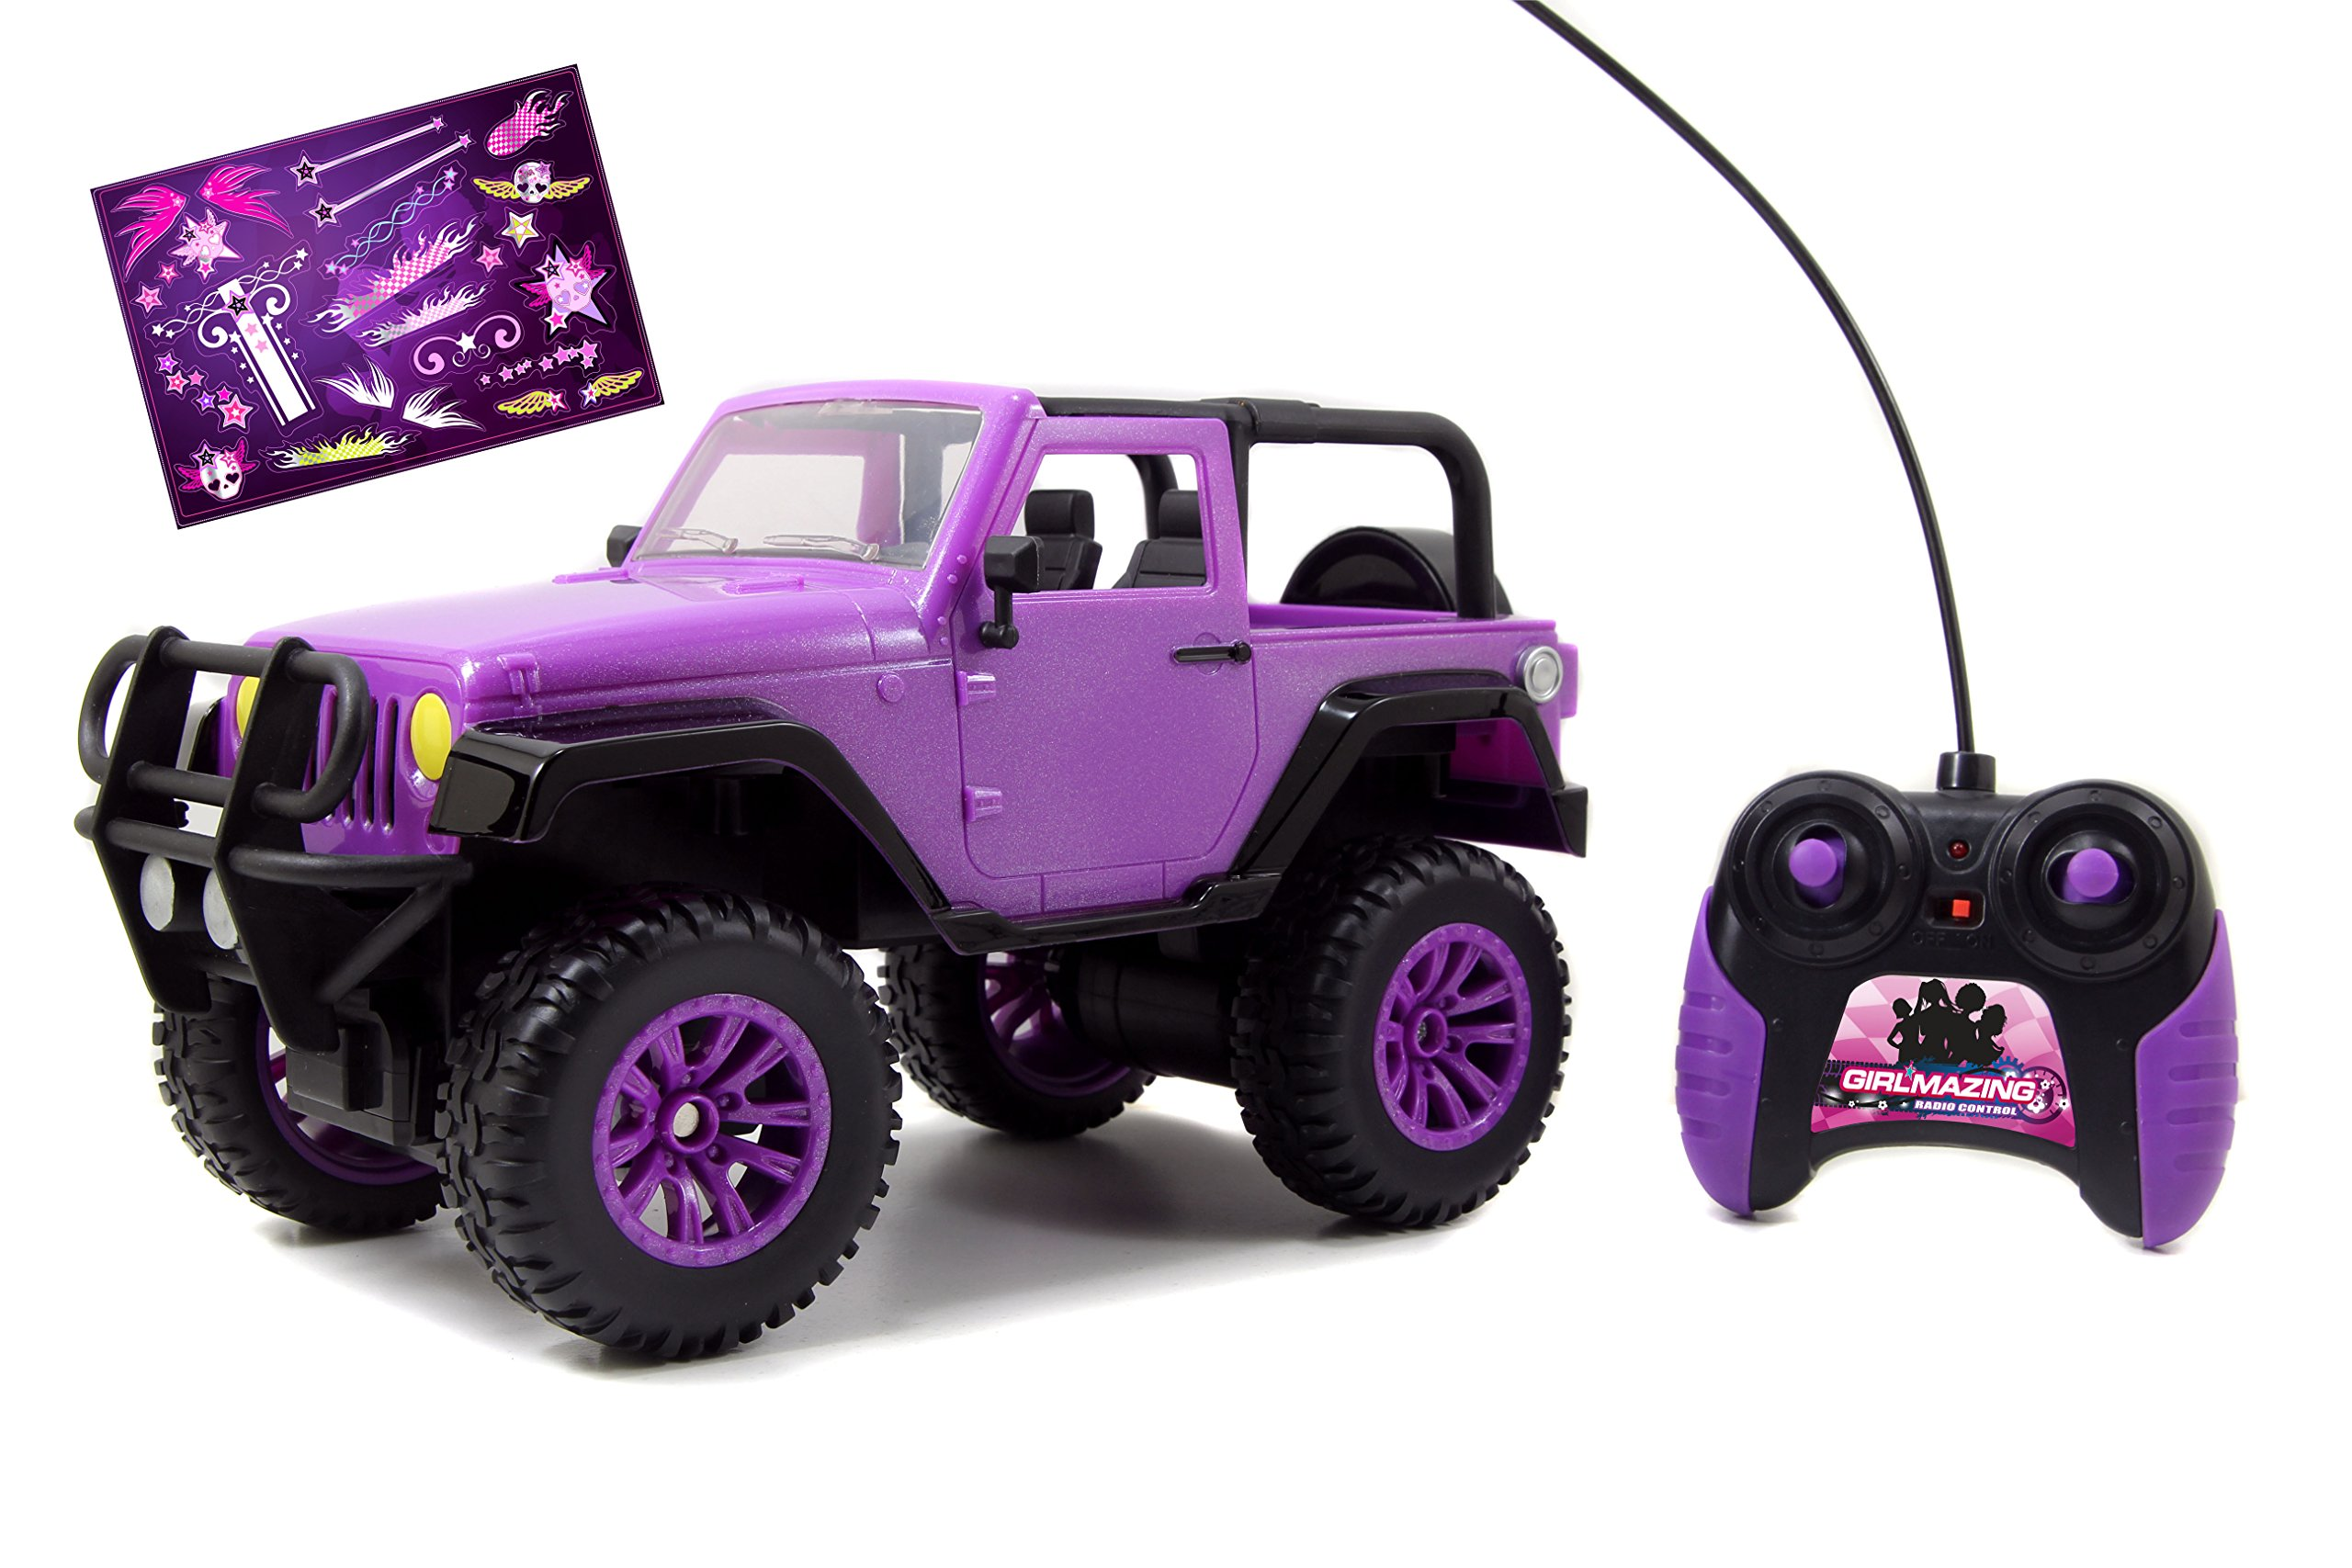 Jada Toys GIRLMAZING Big Foot Jeep R/C Vehicle (1:16 Scale), Purple by Jada Toys (Image #2)